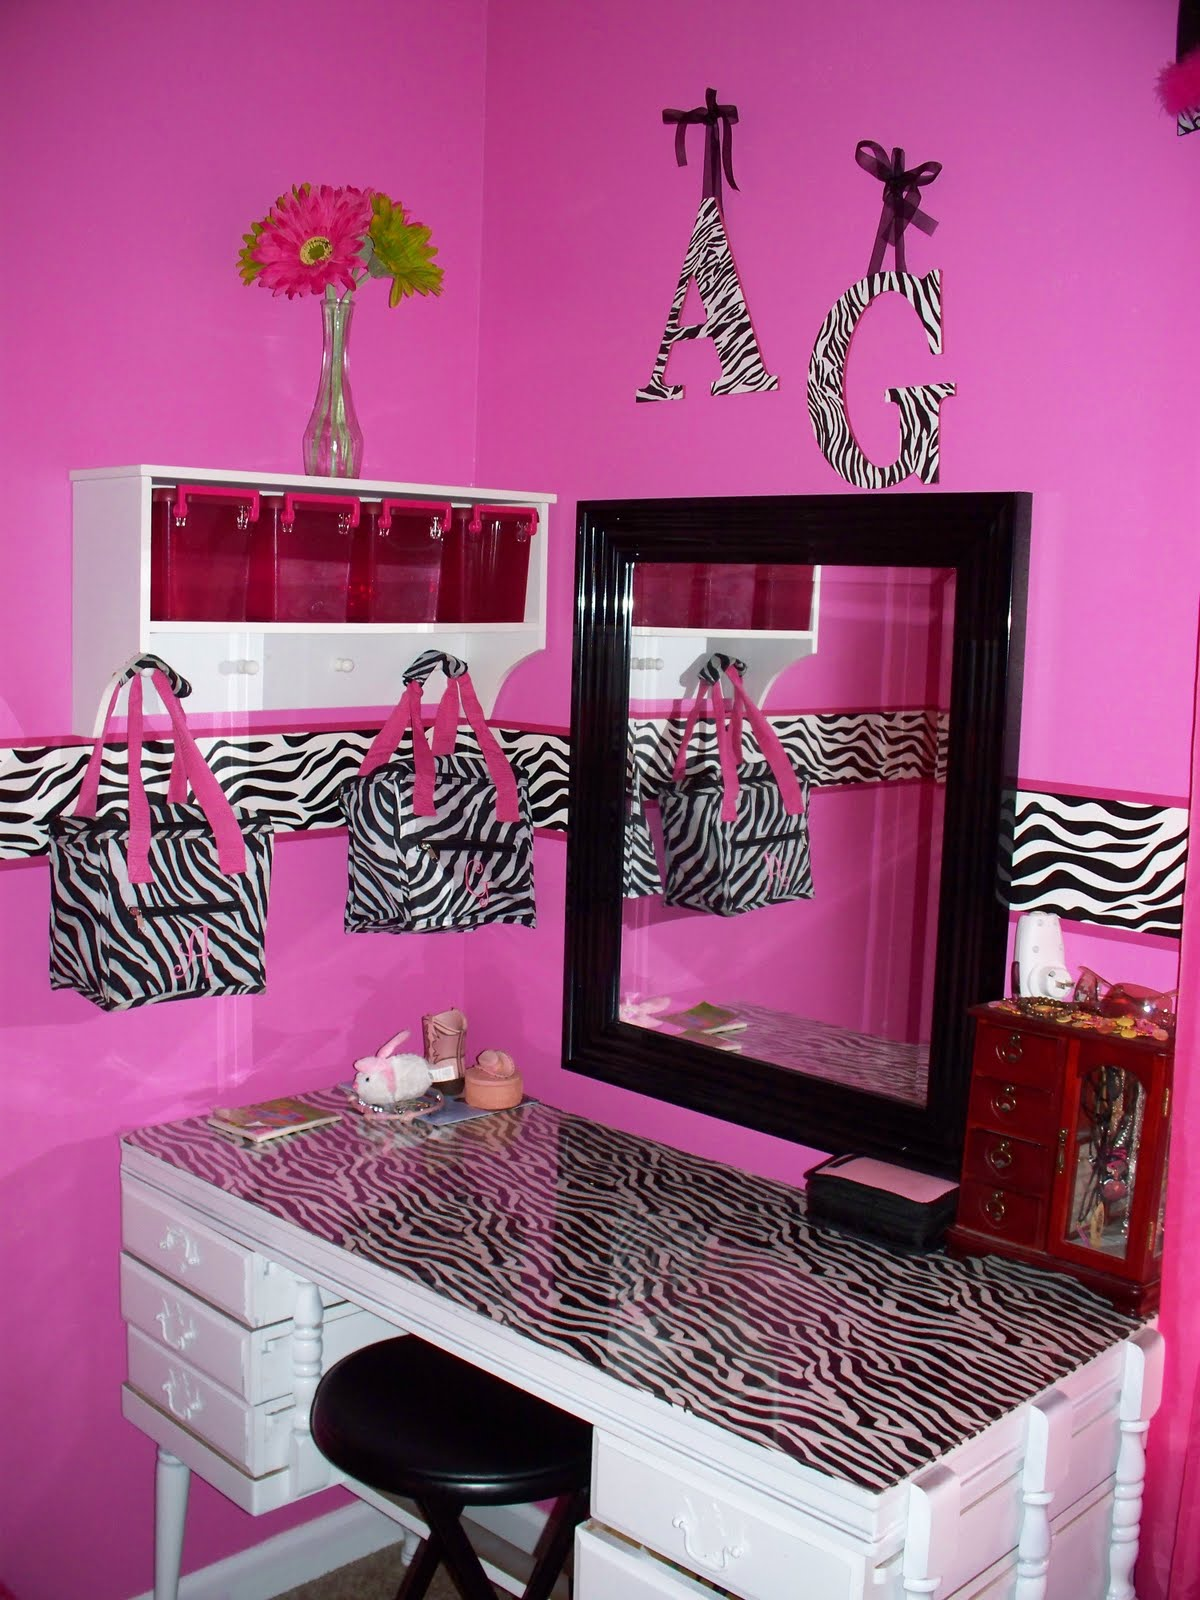 Mommy lou who hot pink zebra room for Room decor zebra print